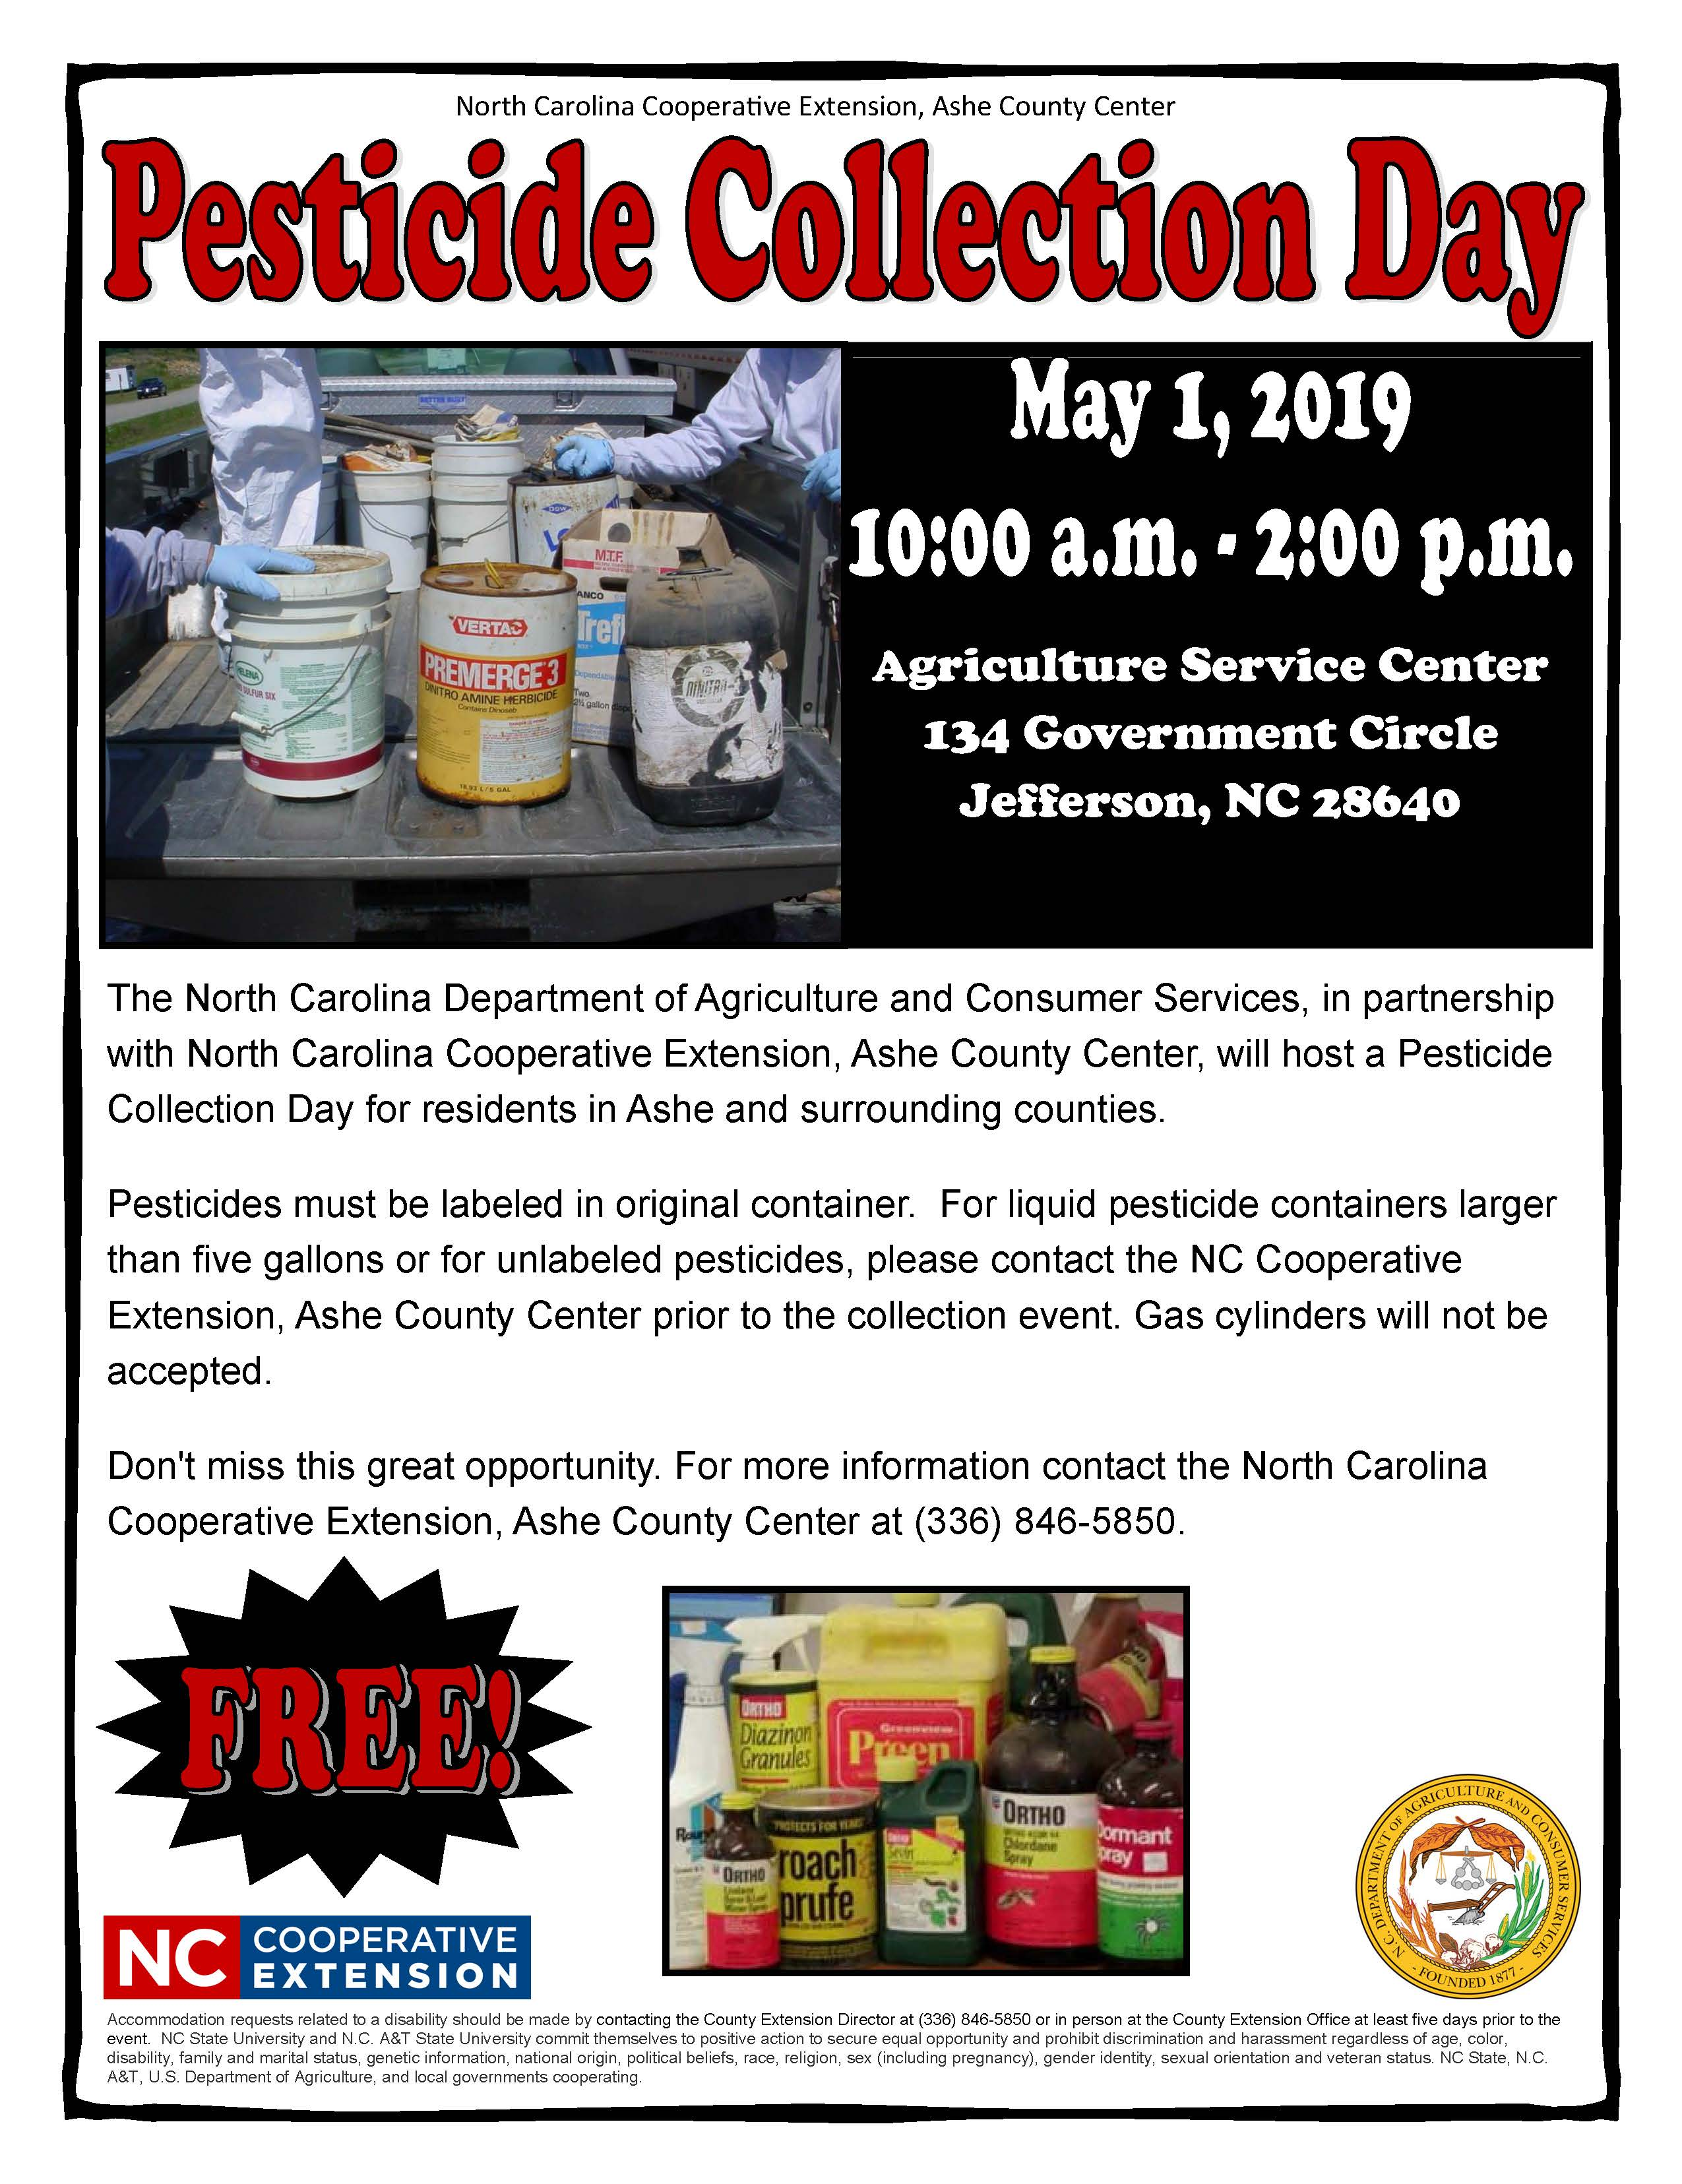 Pestocide Collection Day flyer image